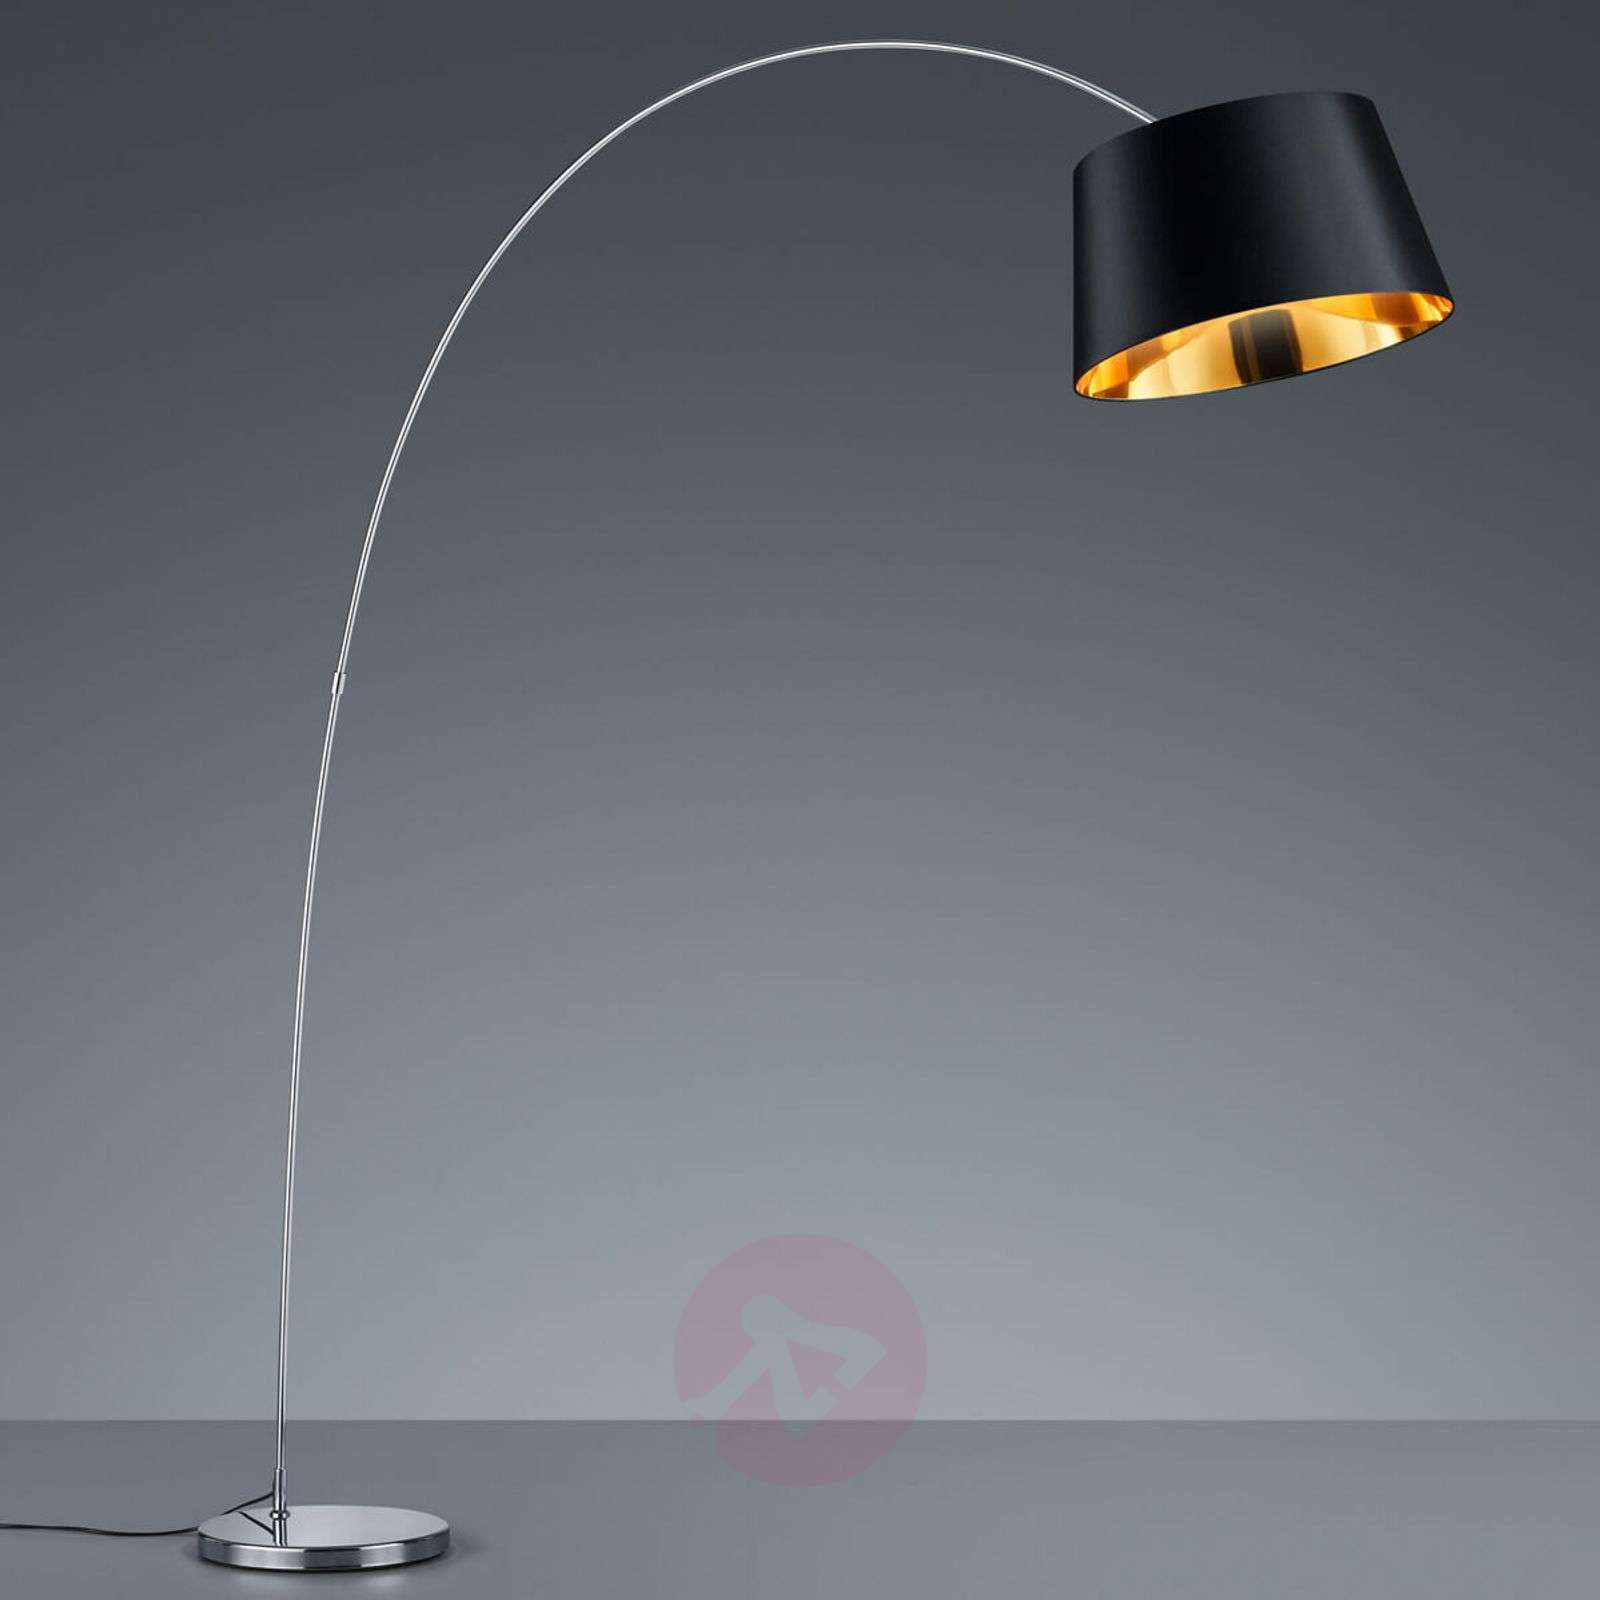 8db5529a80 Modern Floor Lamps - Buy Online » Top Quality   Lights.co.uk